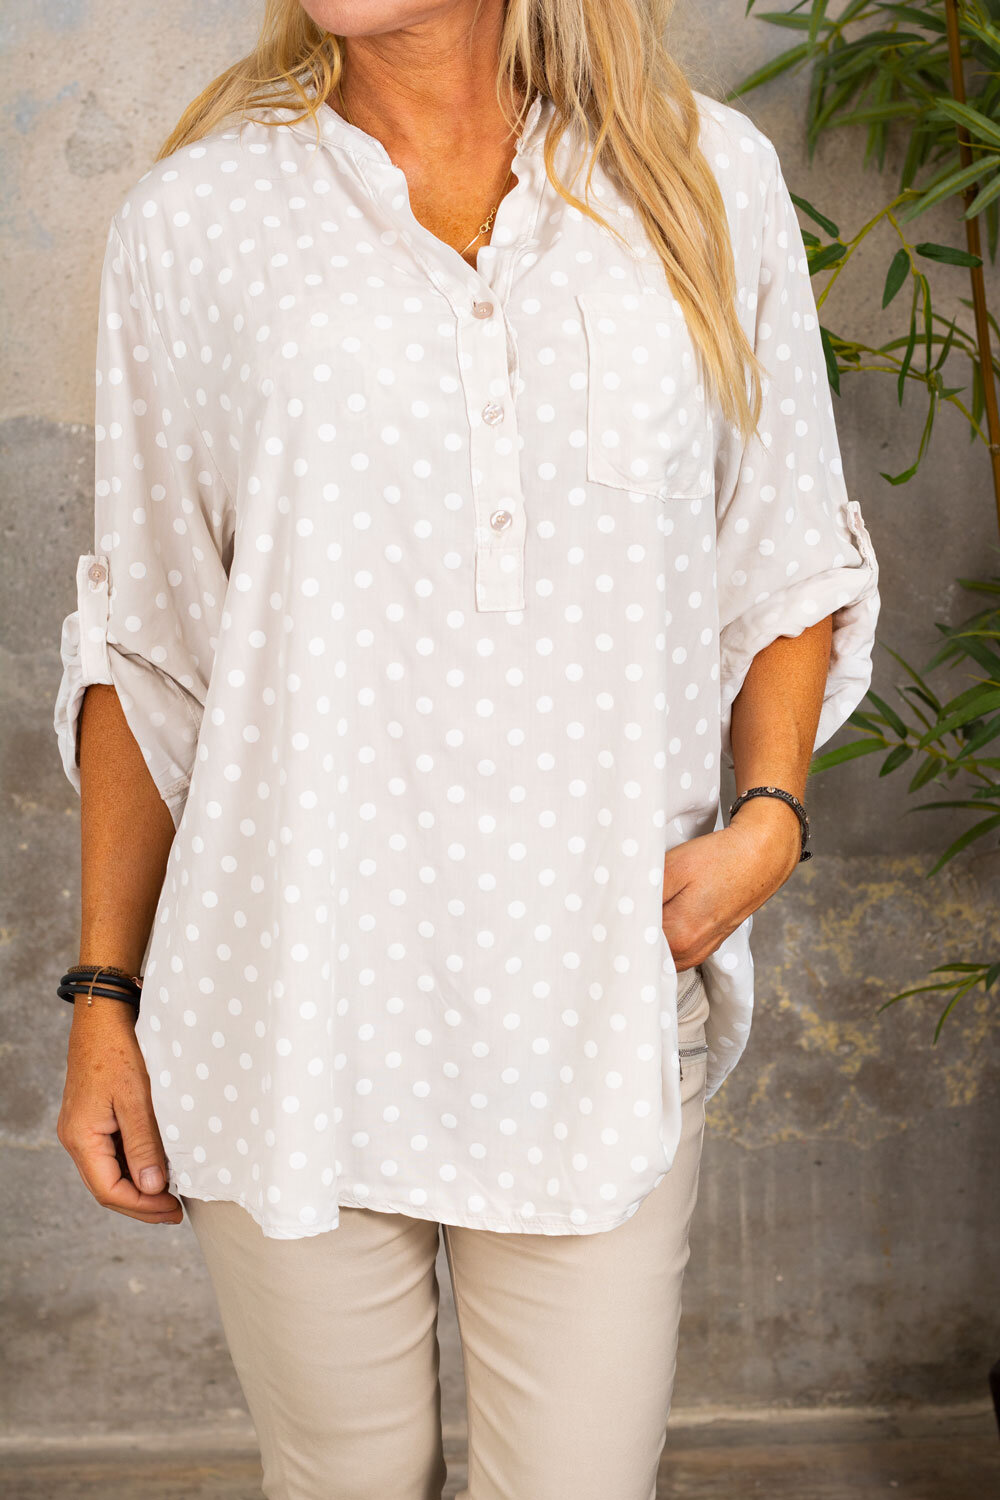 Cora Blouse - Dotted - Beige